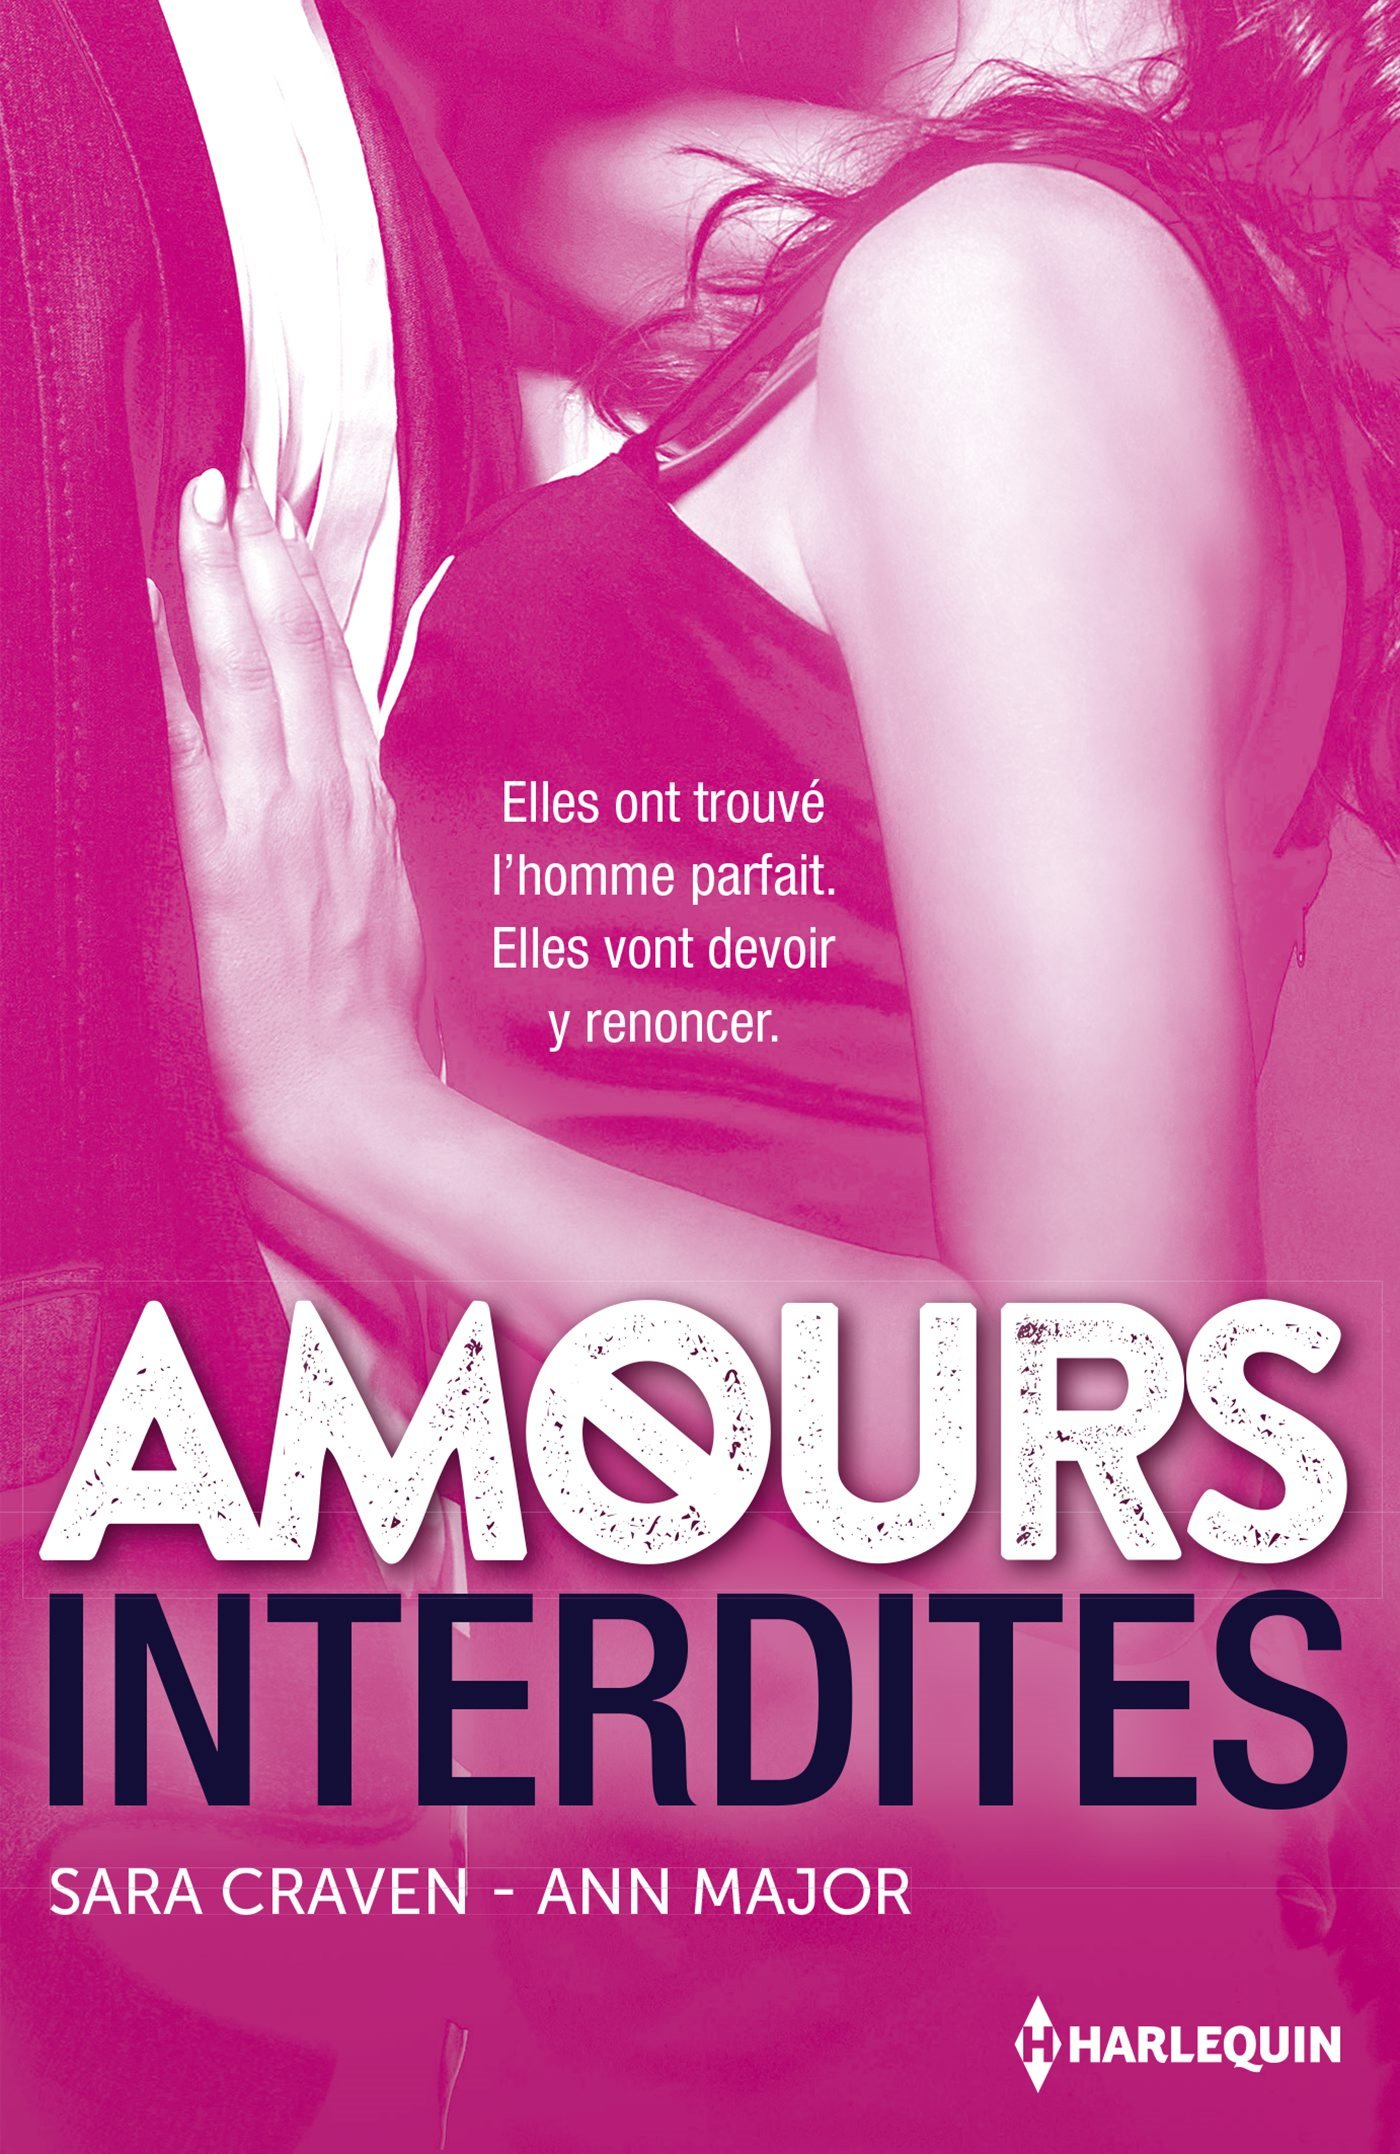 Couverture : Sara Craven, Impossible espoir, Harlequin